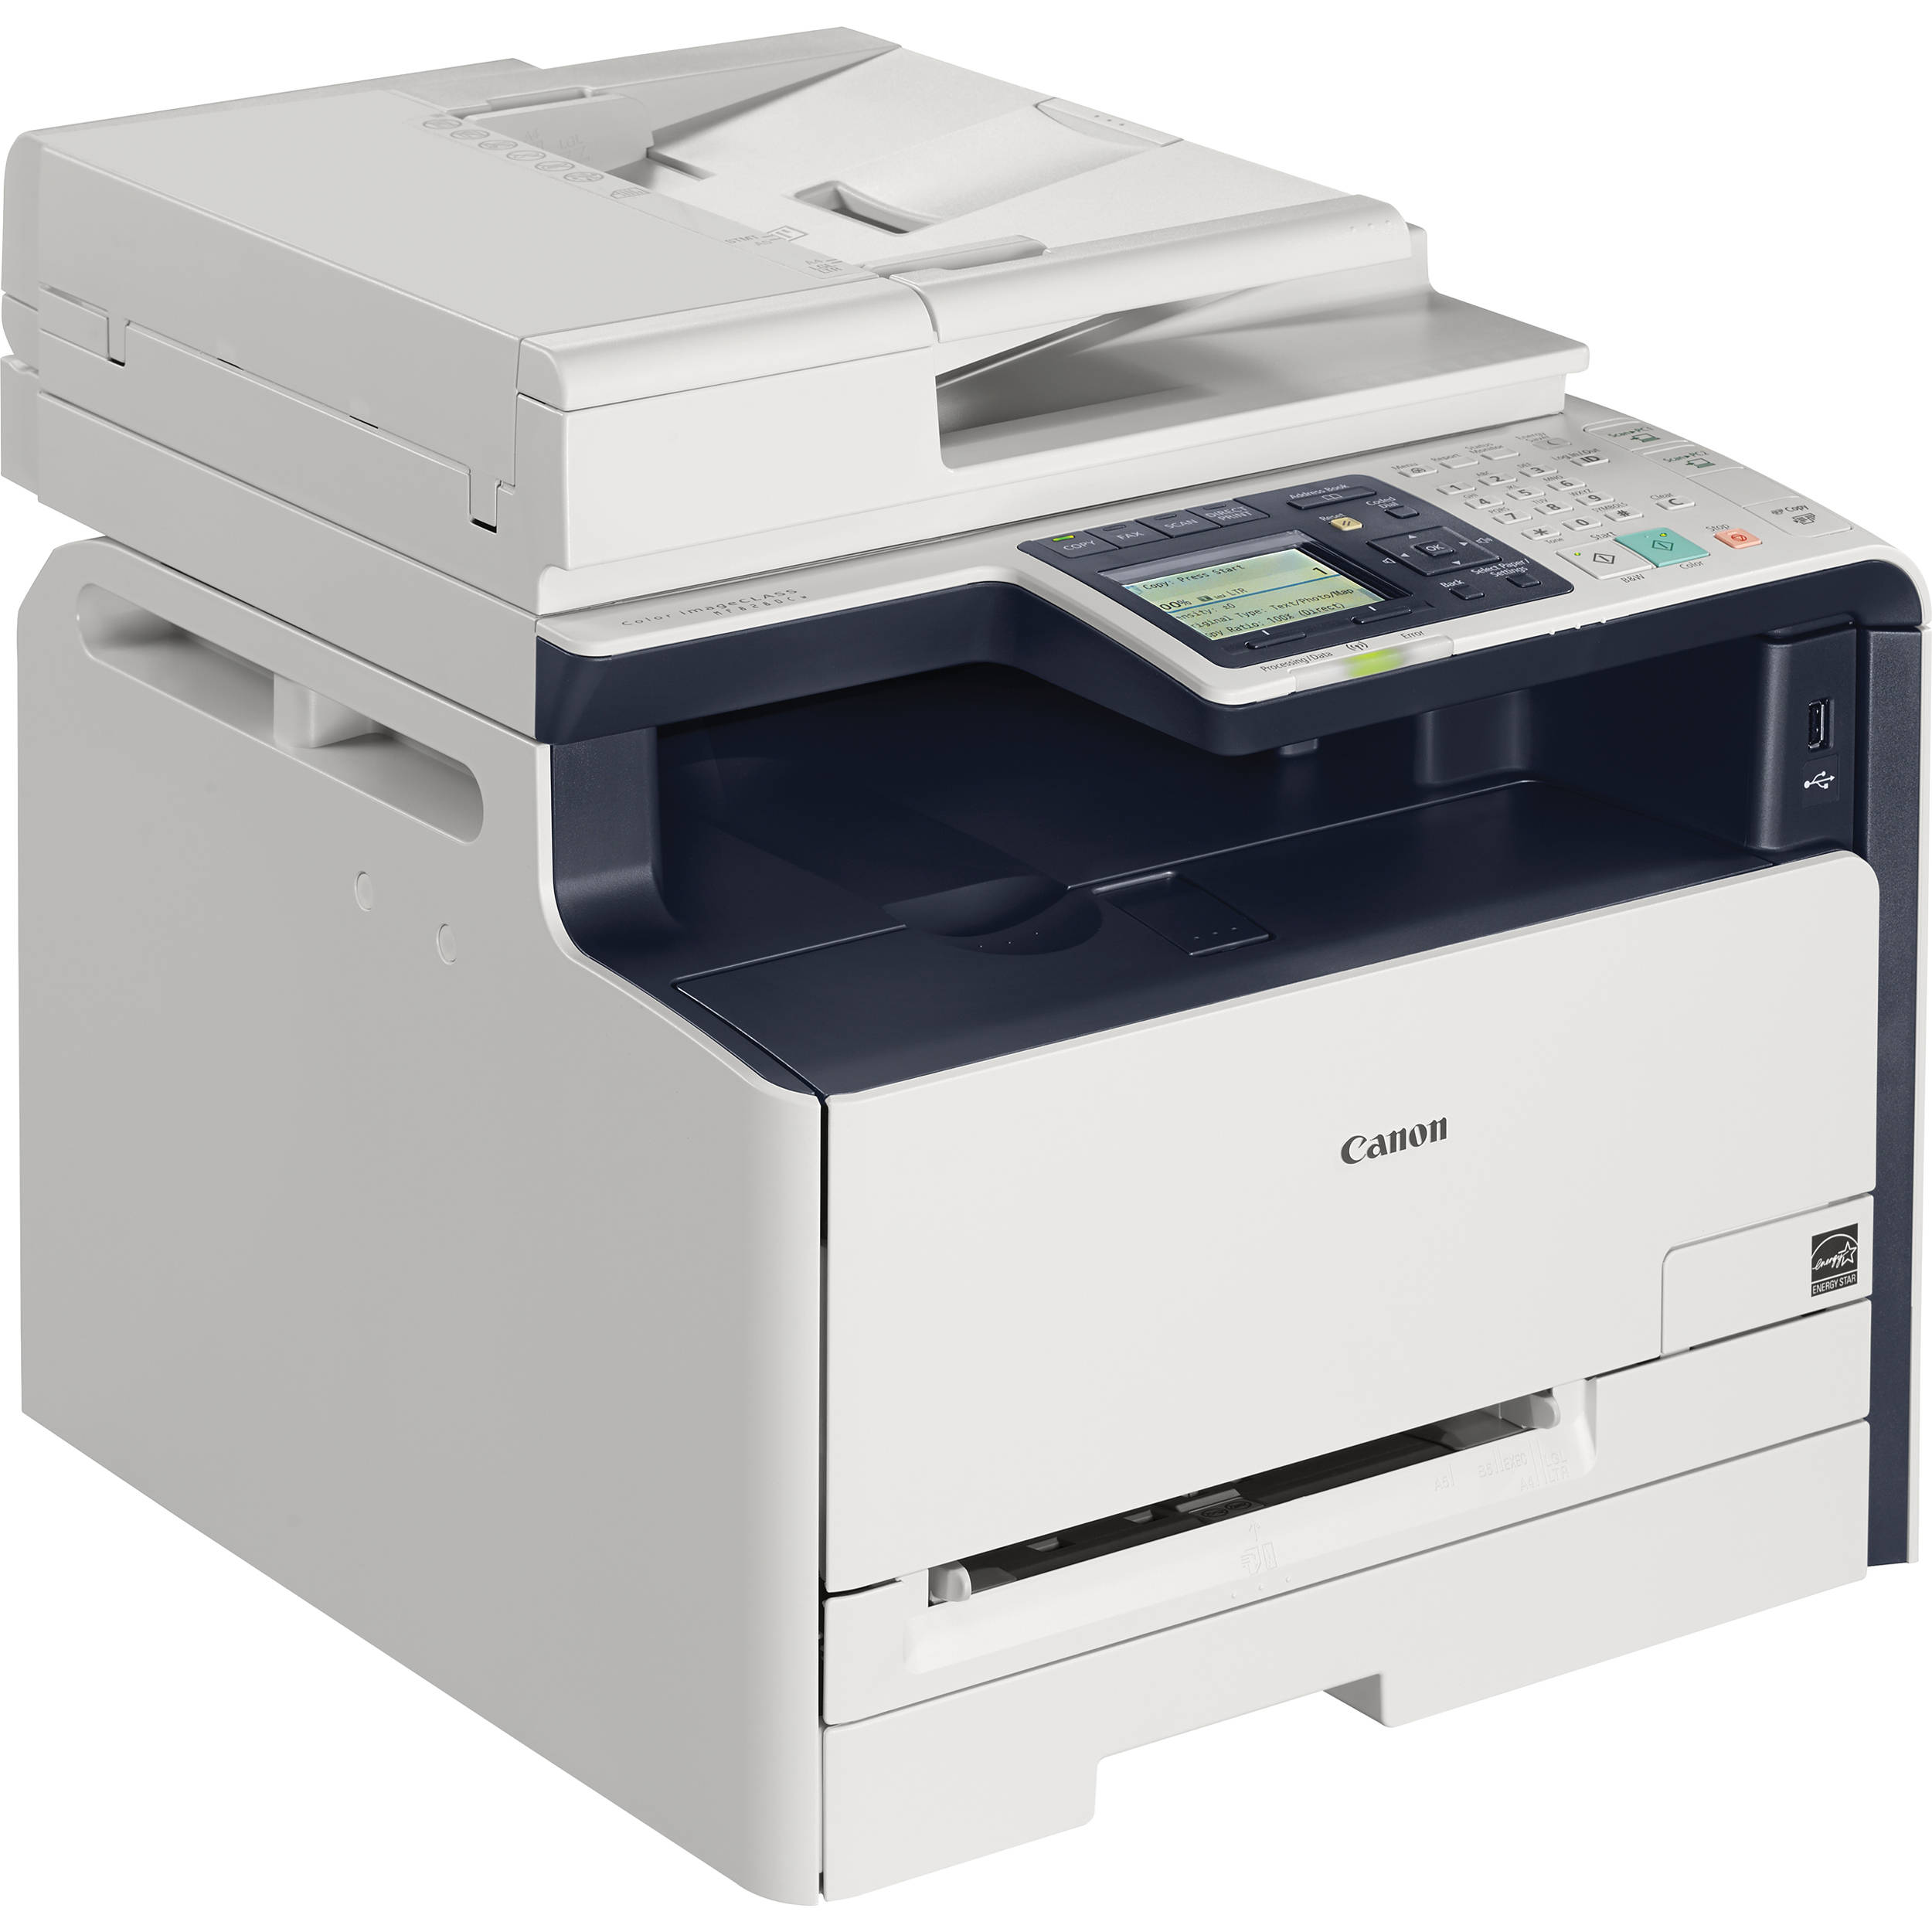 Canon Wireless Color Laser Printer